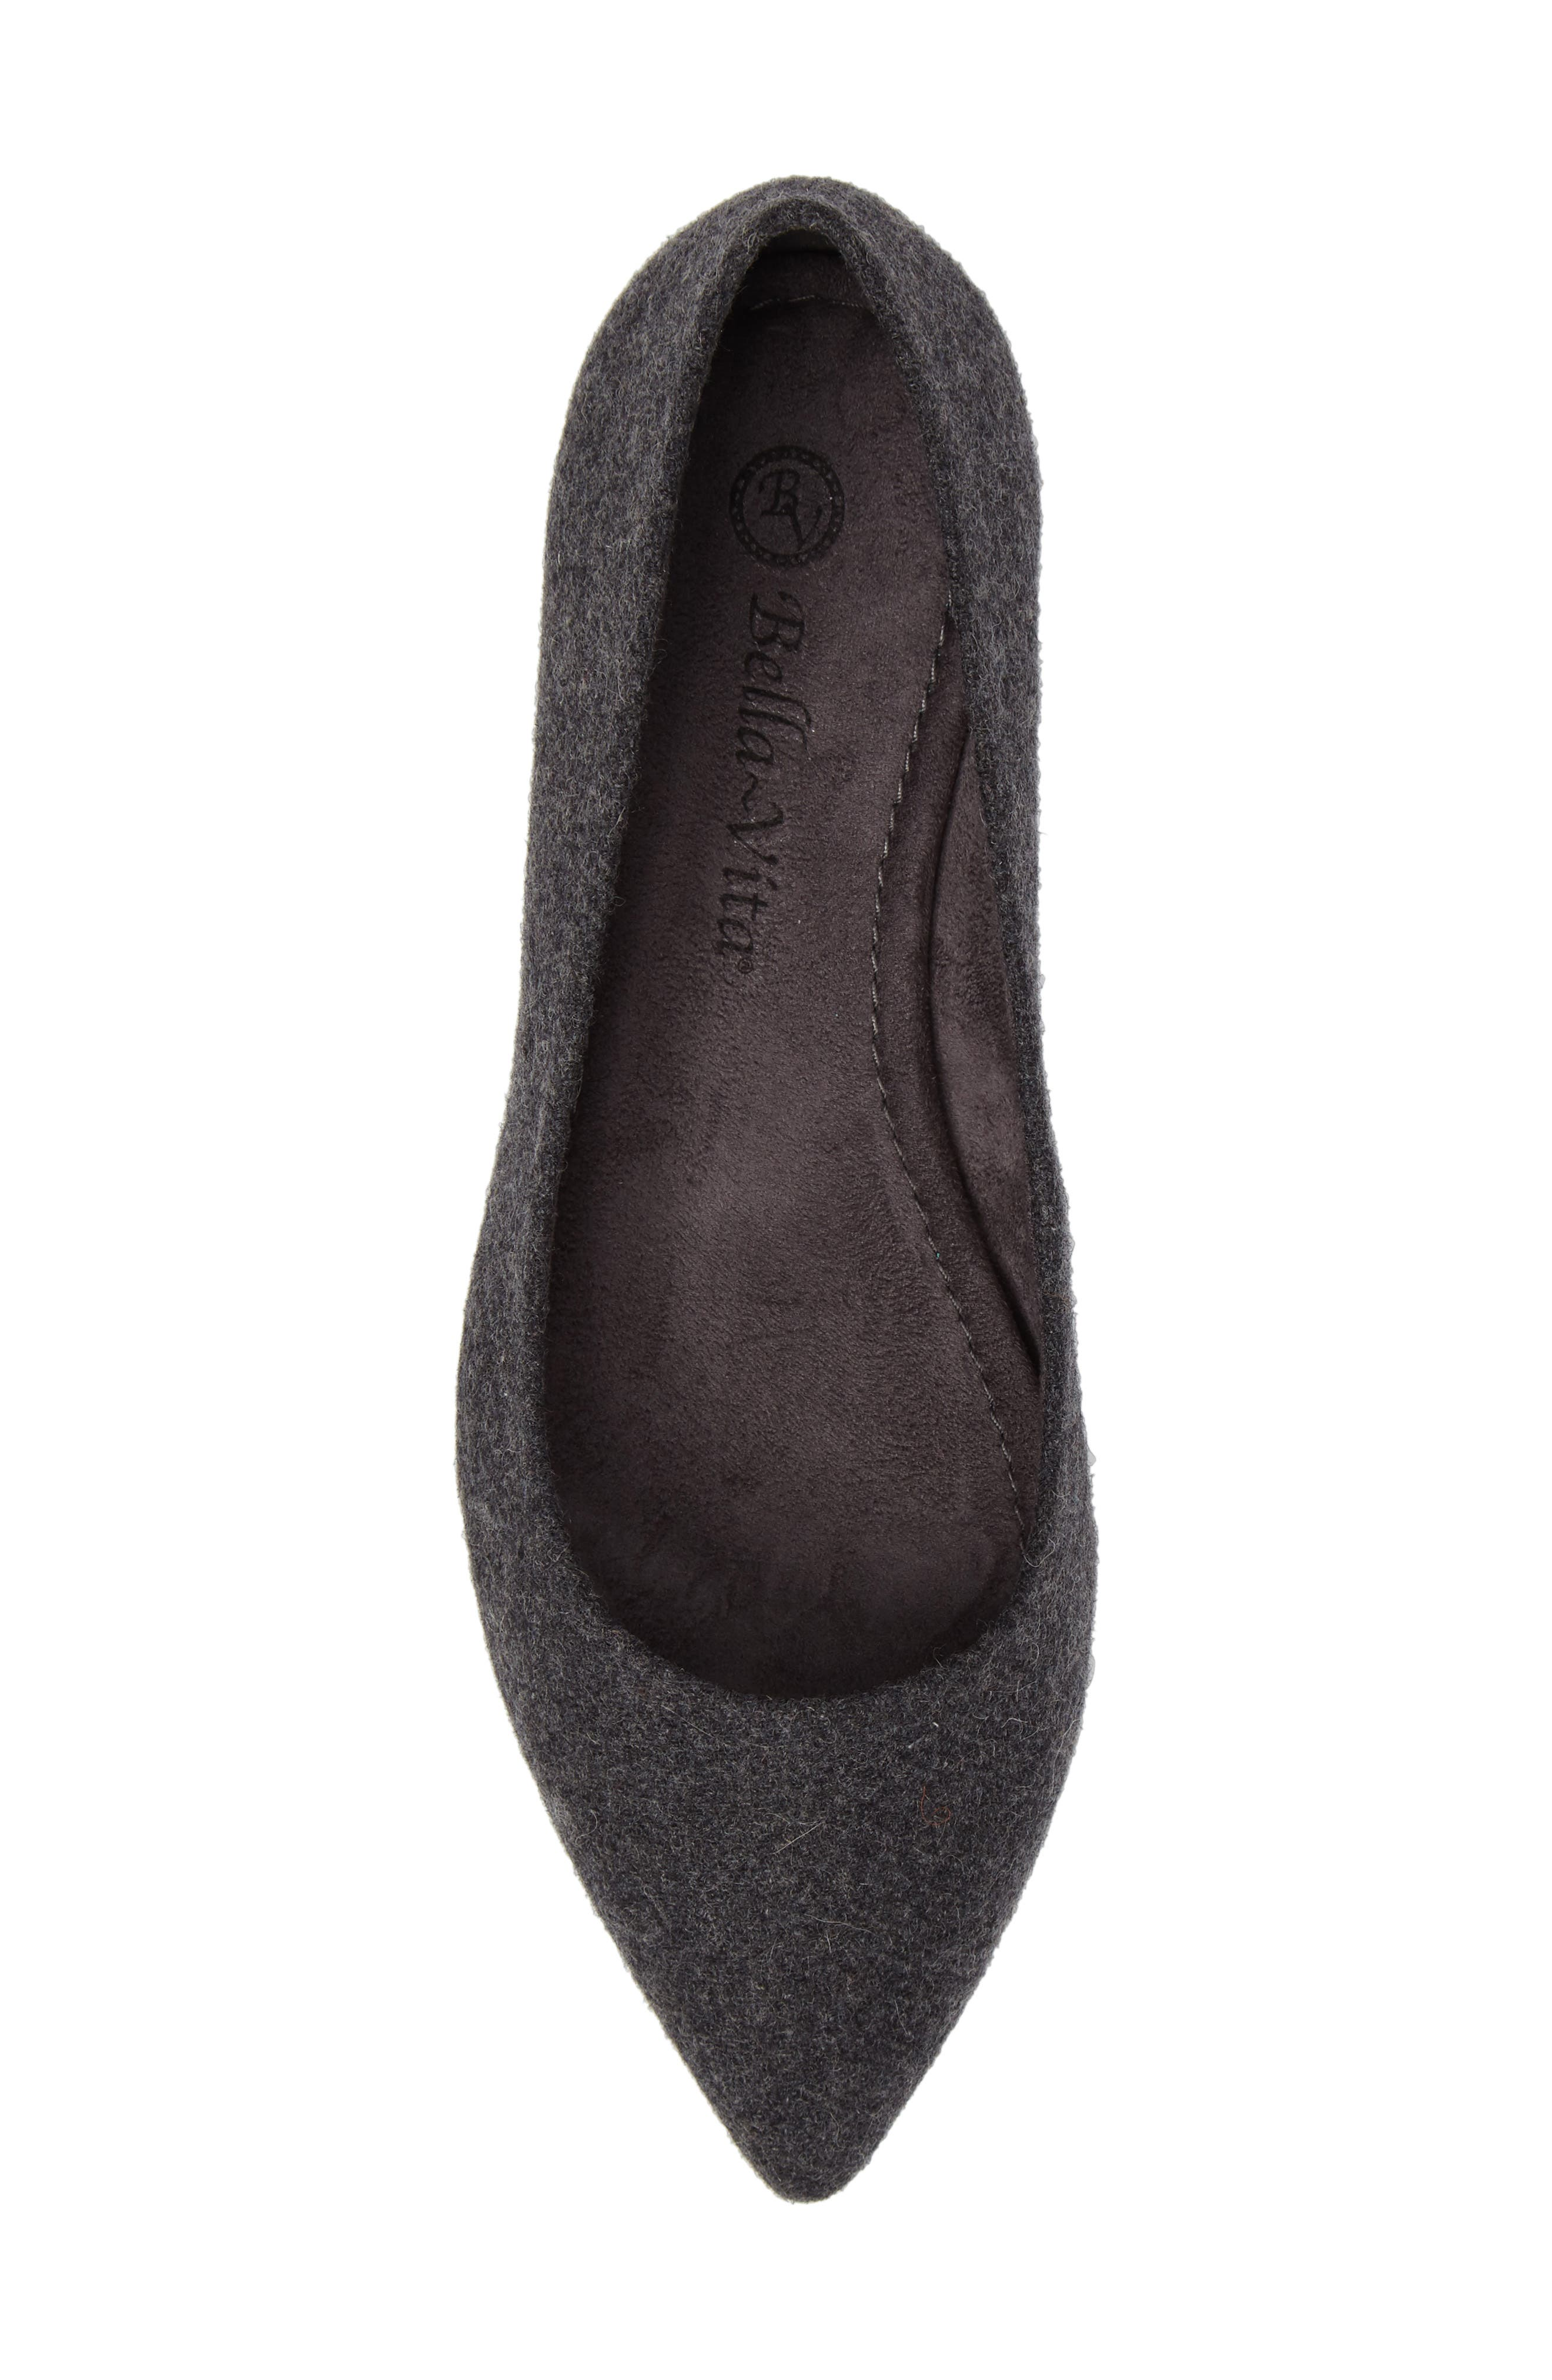 'Vivien' Pointy Toe Flat,                             Alternate thumbnail 5, color,                             GREY FLANNEL FABRIC